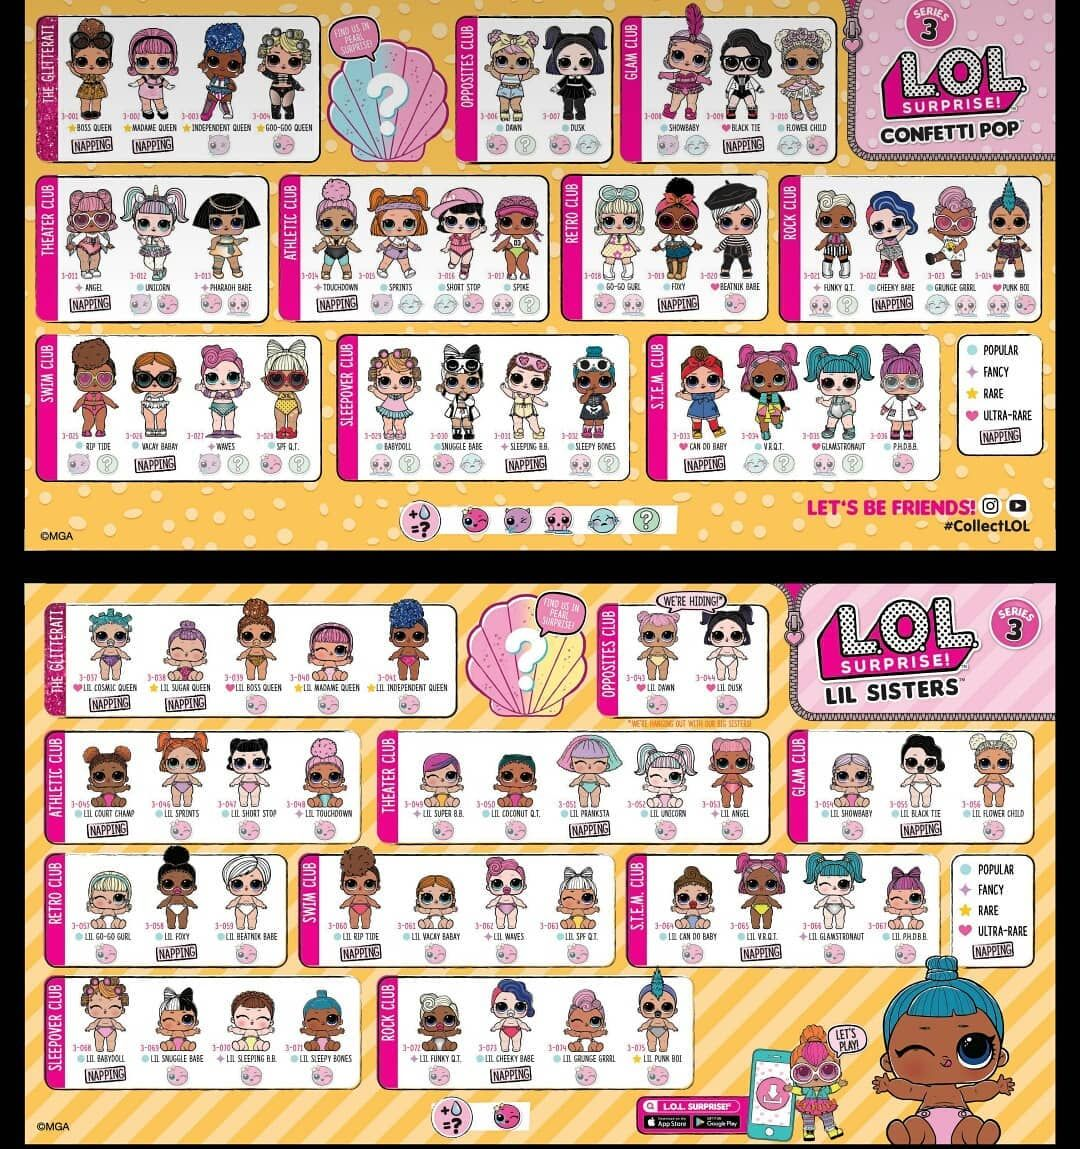 Lol Surprise Series 3 Here Is The Completed List Of Series 3 But There Are A Few Napping List For Wave 2 Big S Lol Dolls Lol Monster High Birthday Party